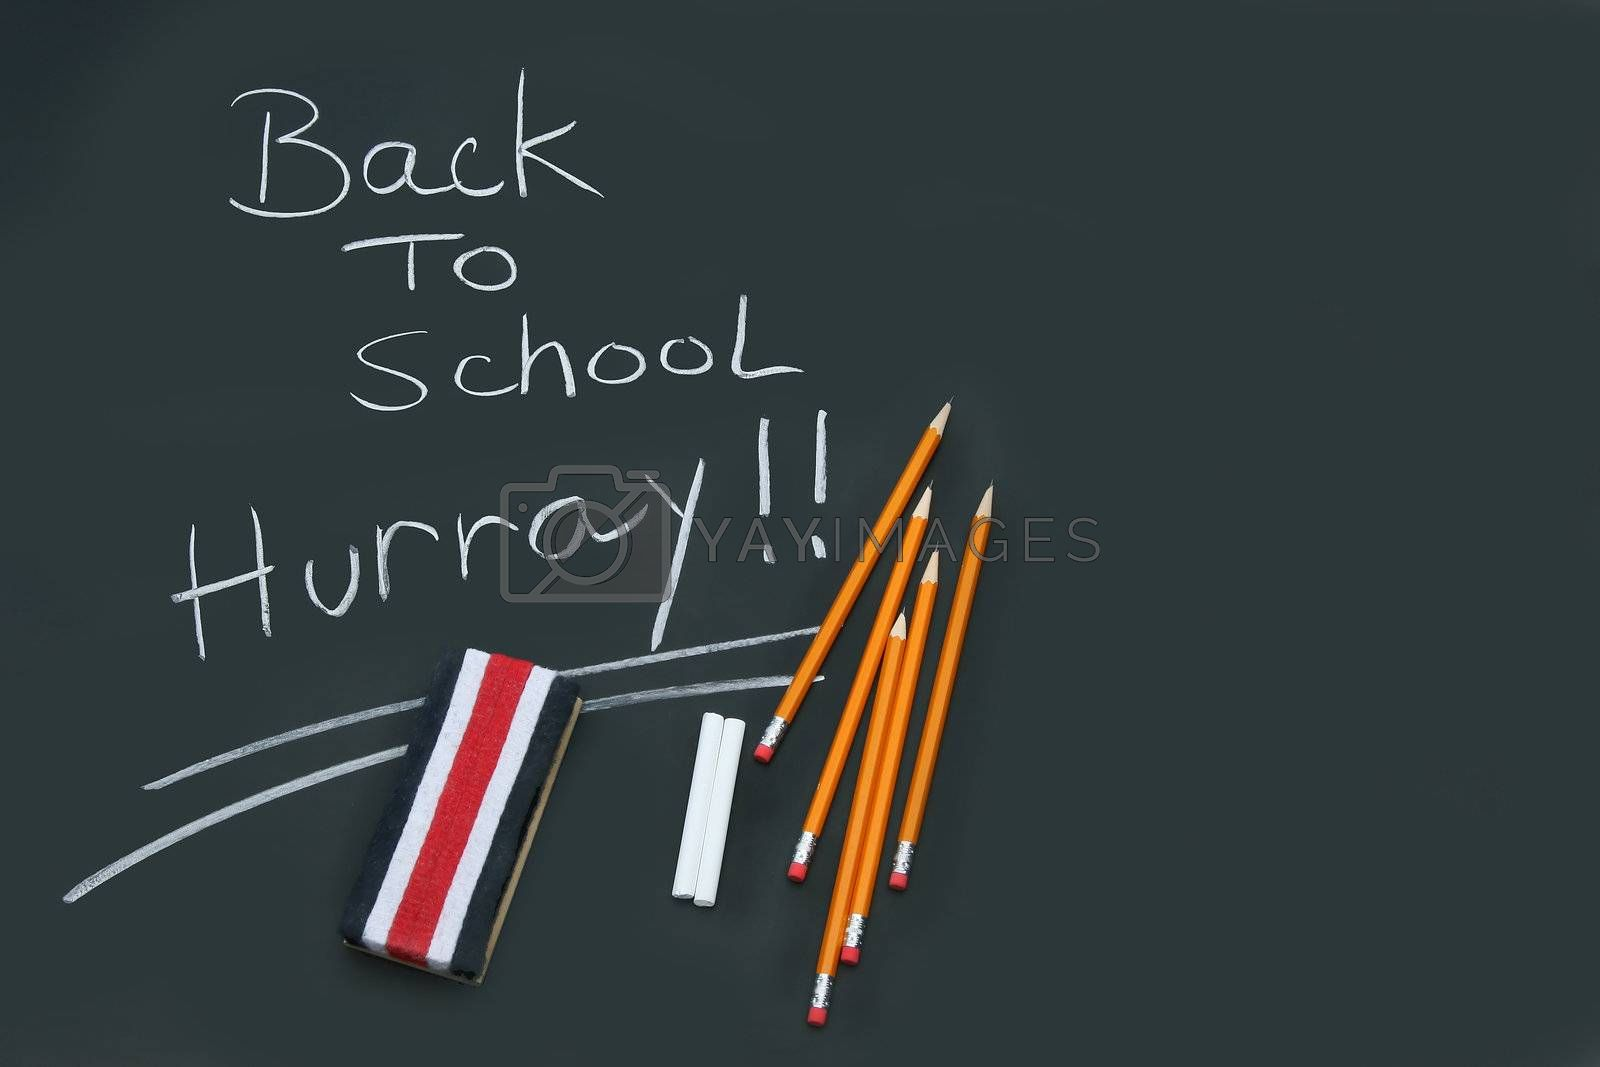 Back to school written on black chalkboard with pencils and eraser